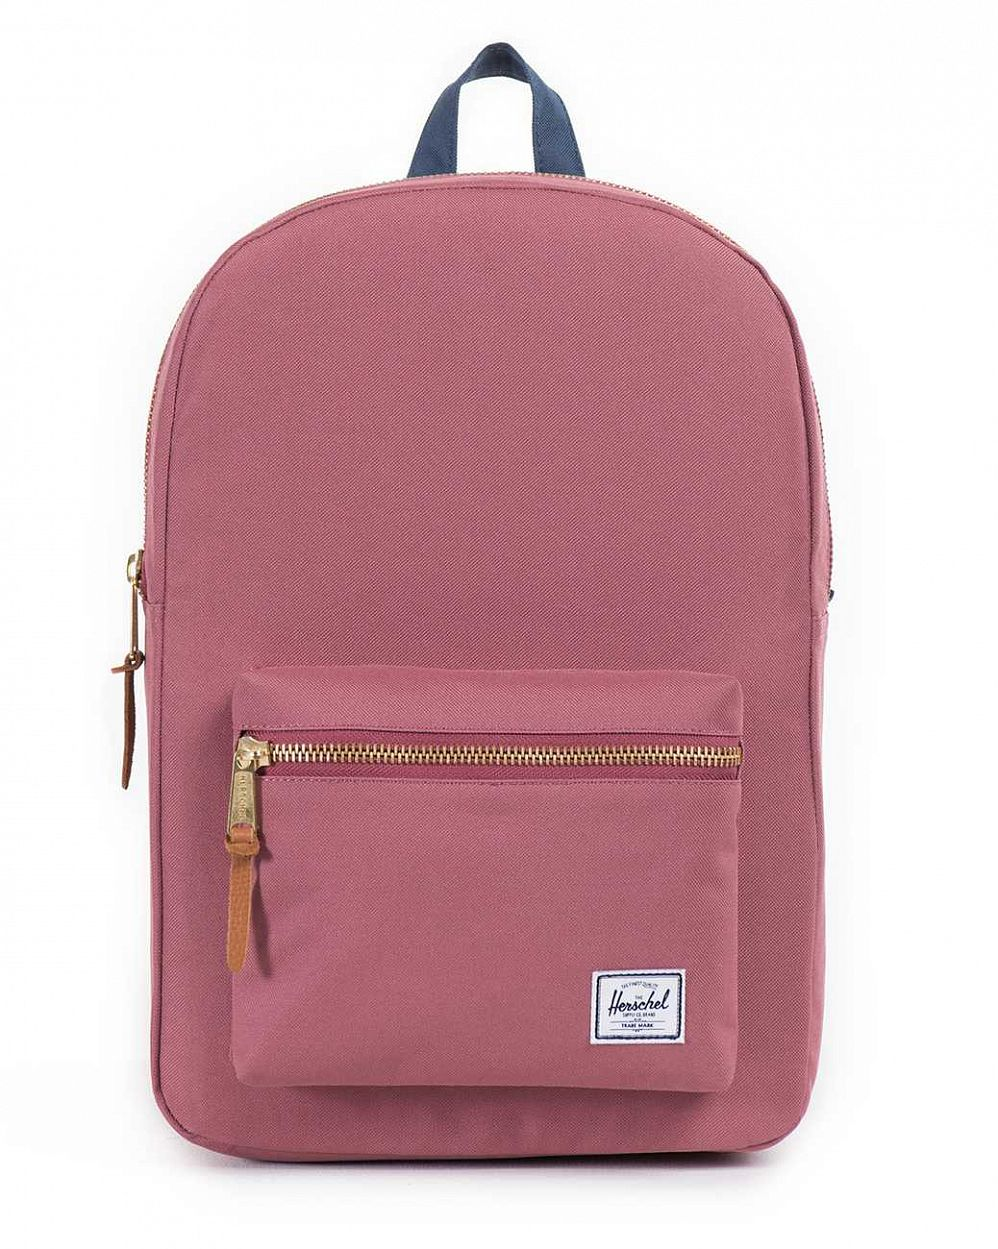 купить Рюкзак Herschel Settlement Mid-Volume Dusty Blush Navy Khaki Rubber в Москве